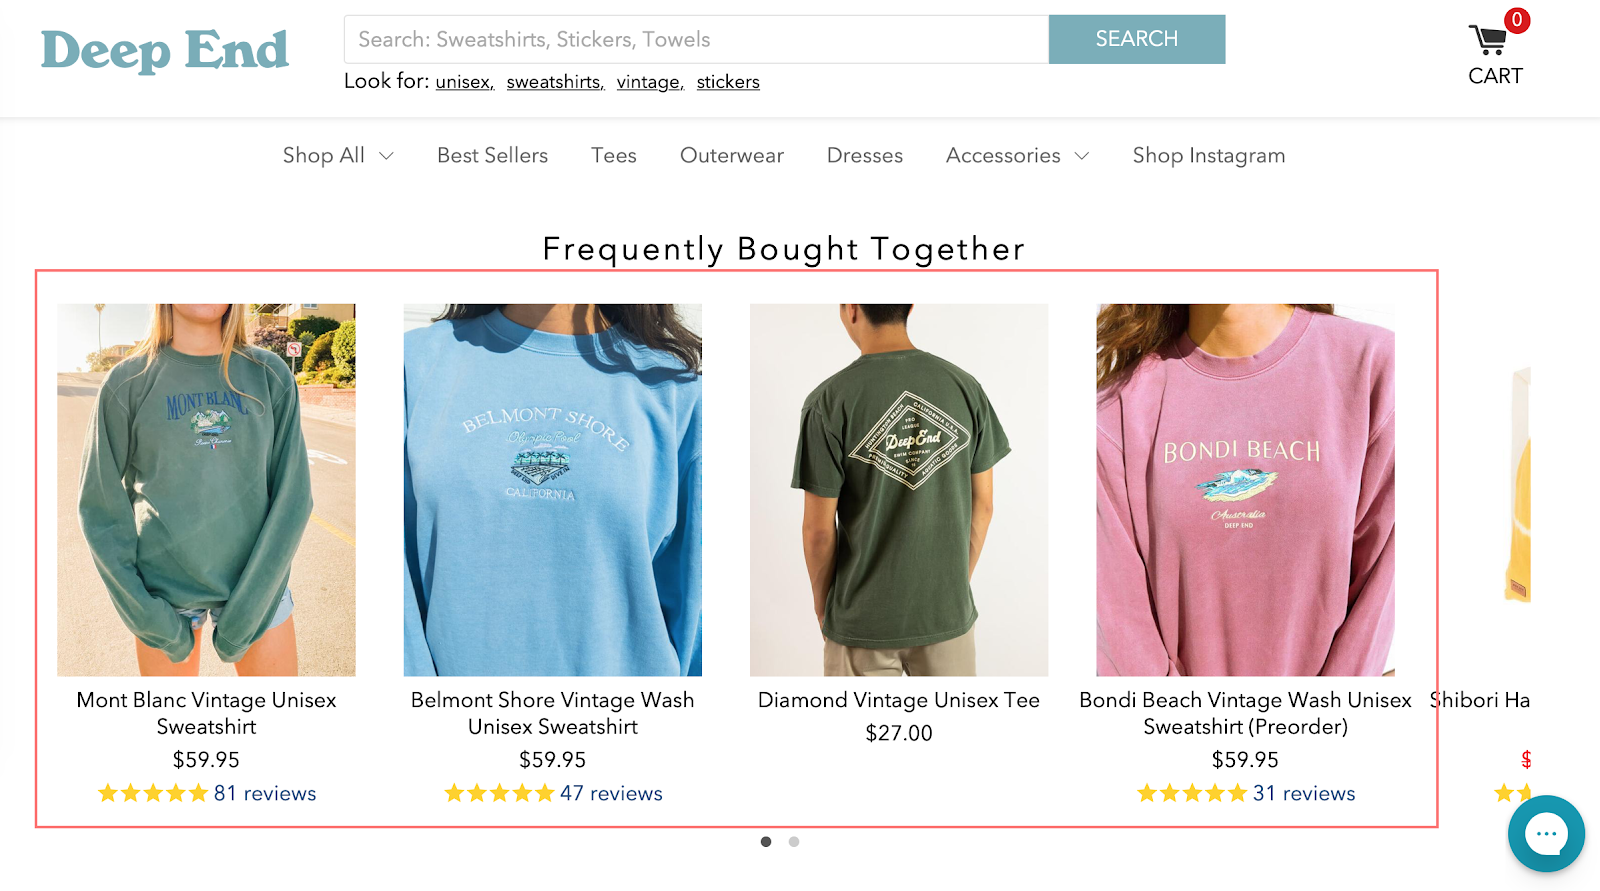 3 Cross-Selling Strategies to Increase eCommerce AOV (average order value)